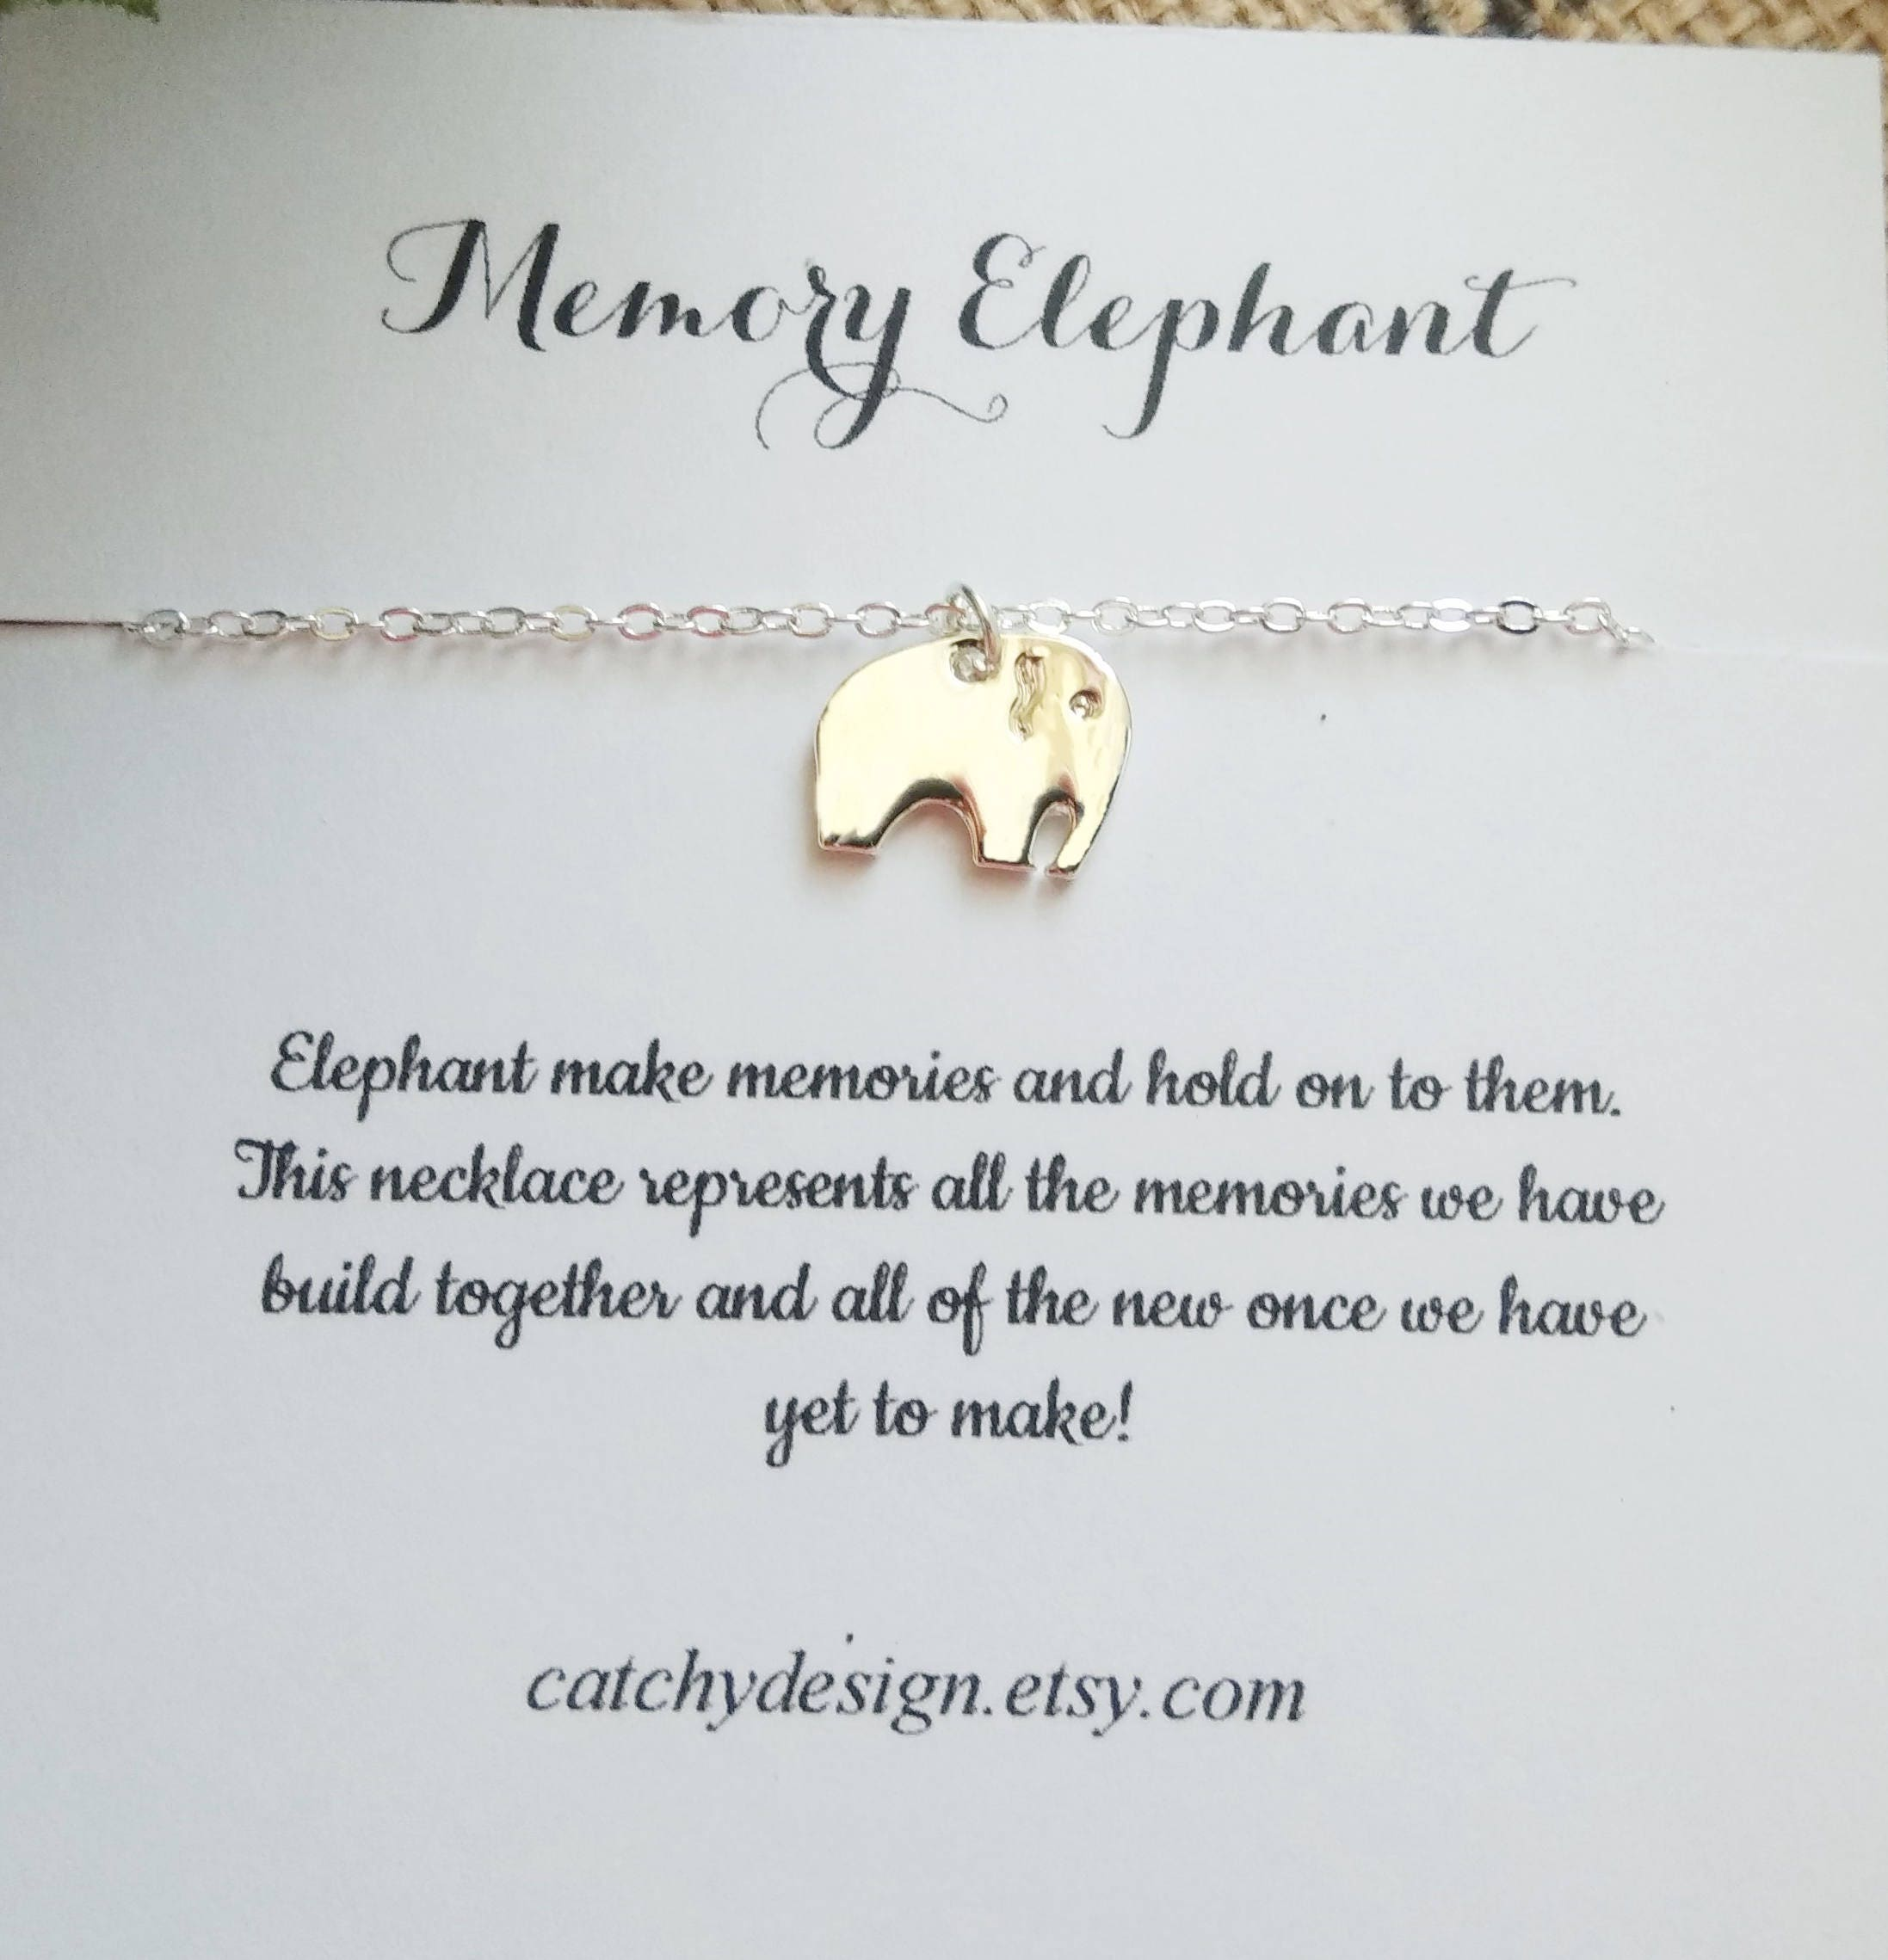 pin transforms cherished memories the fine of empyreal collection remnants octopus necklace jewelry and talisman art